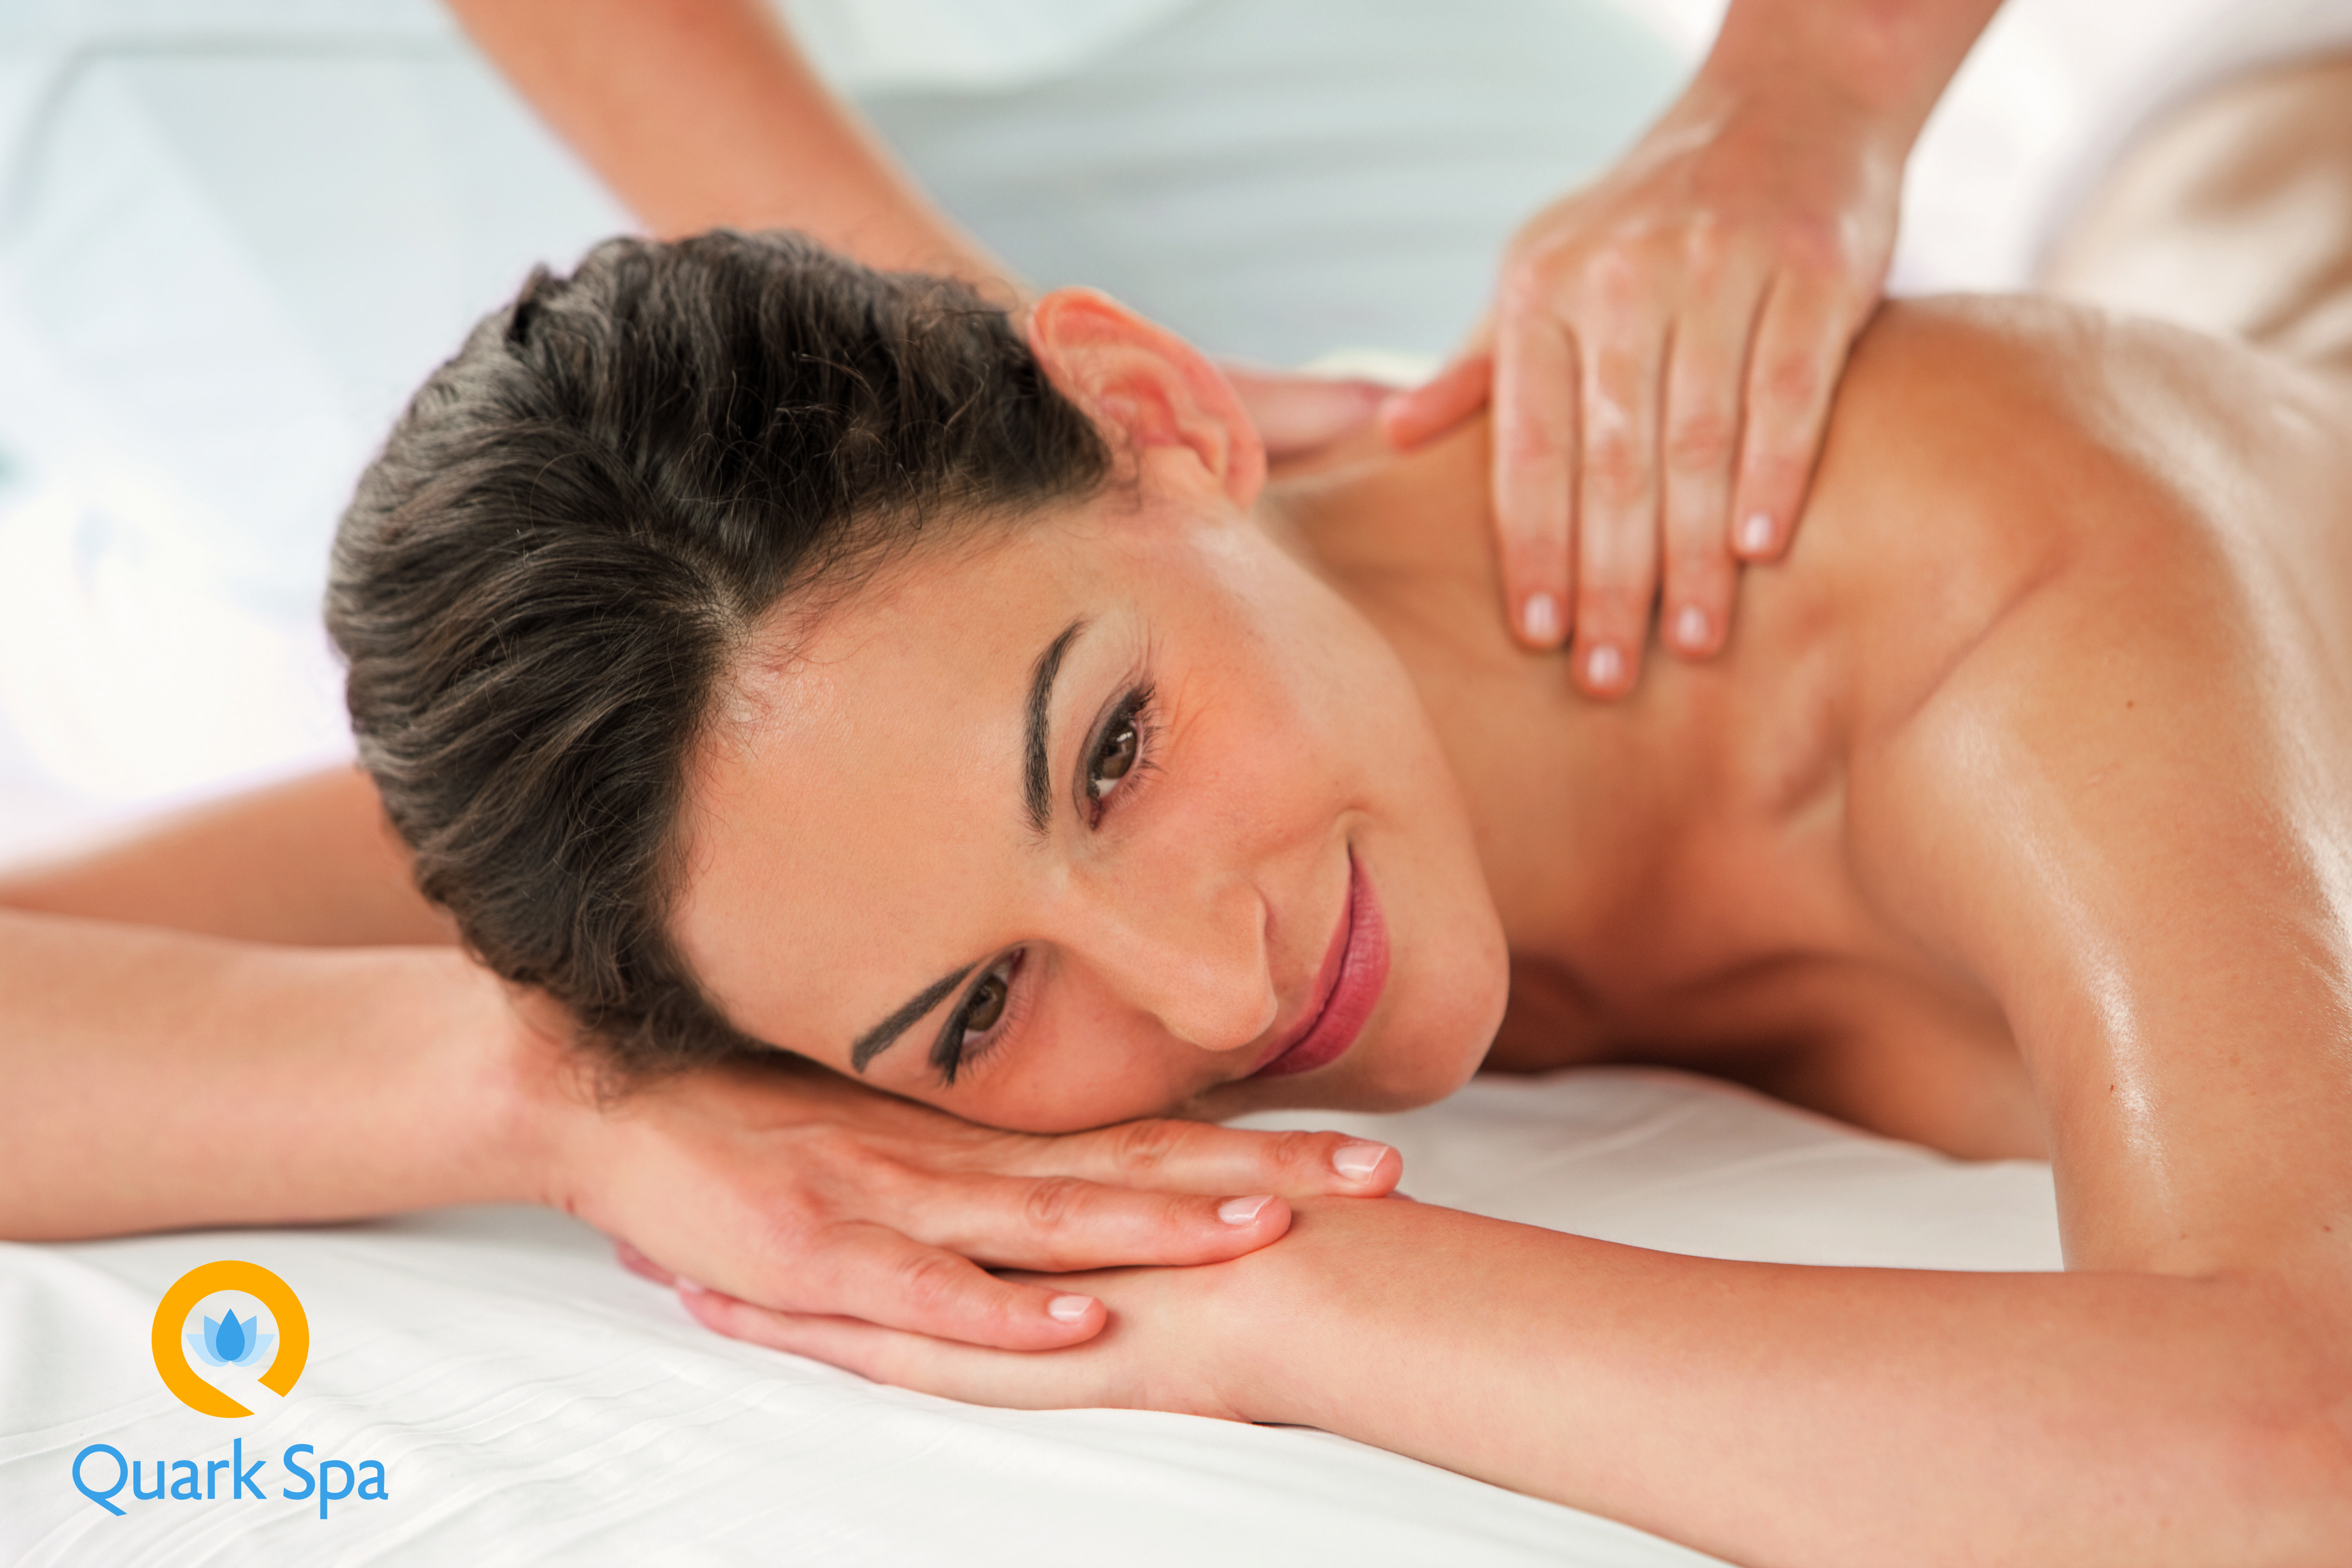 Relax and get ready for another day exploring the wilds of the polar regions with rejuvenating onboard spa treatments.